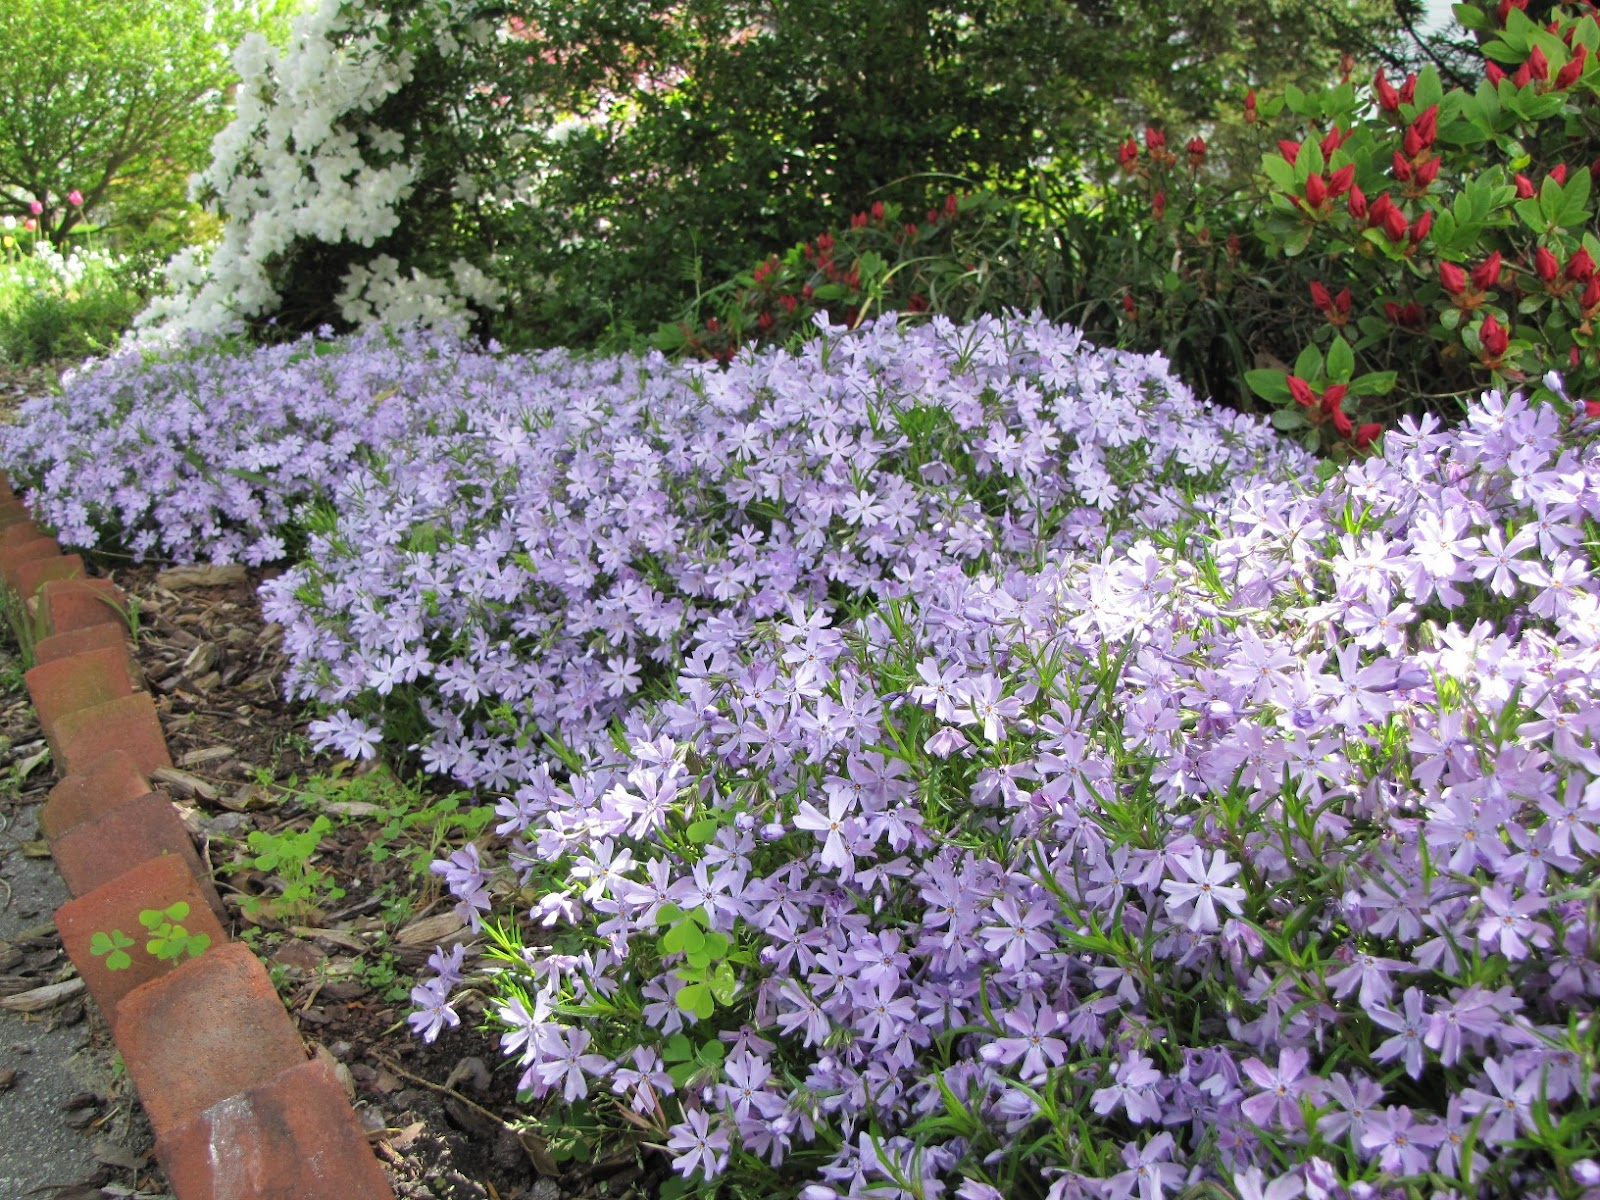 Views from the Garden: How to propagate creeping phlox from the root ball